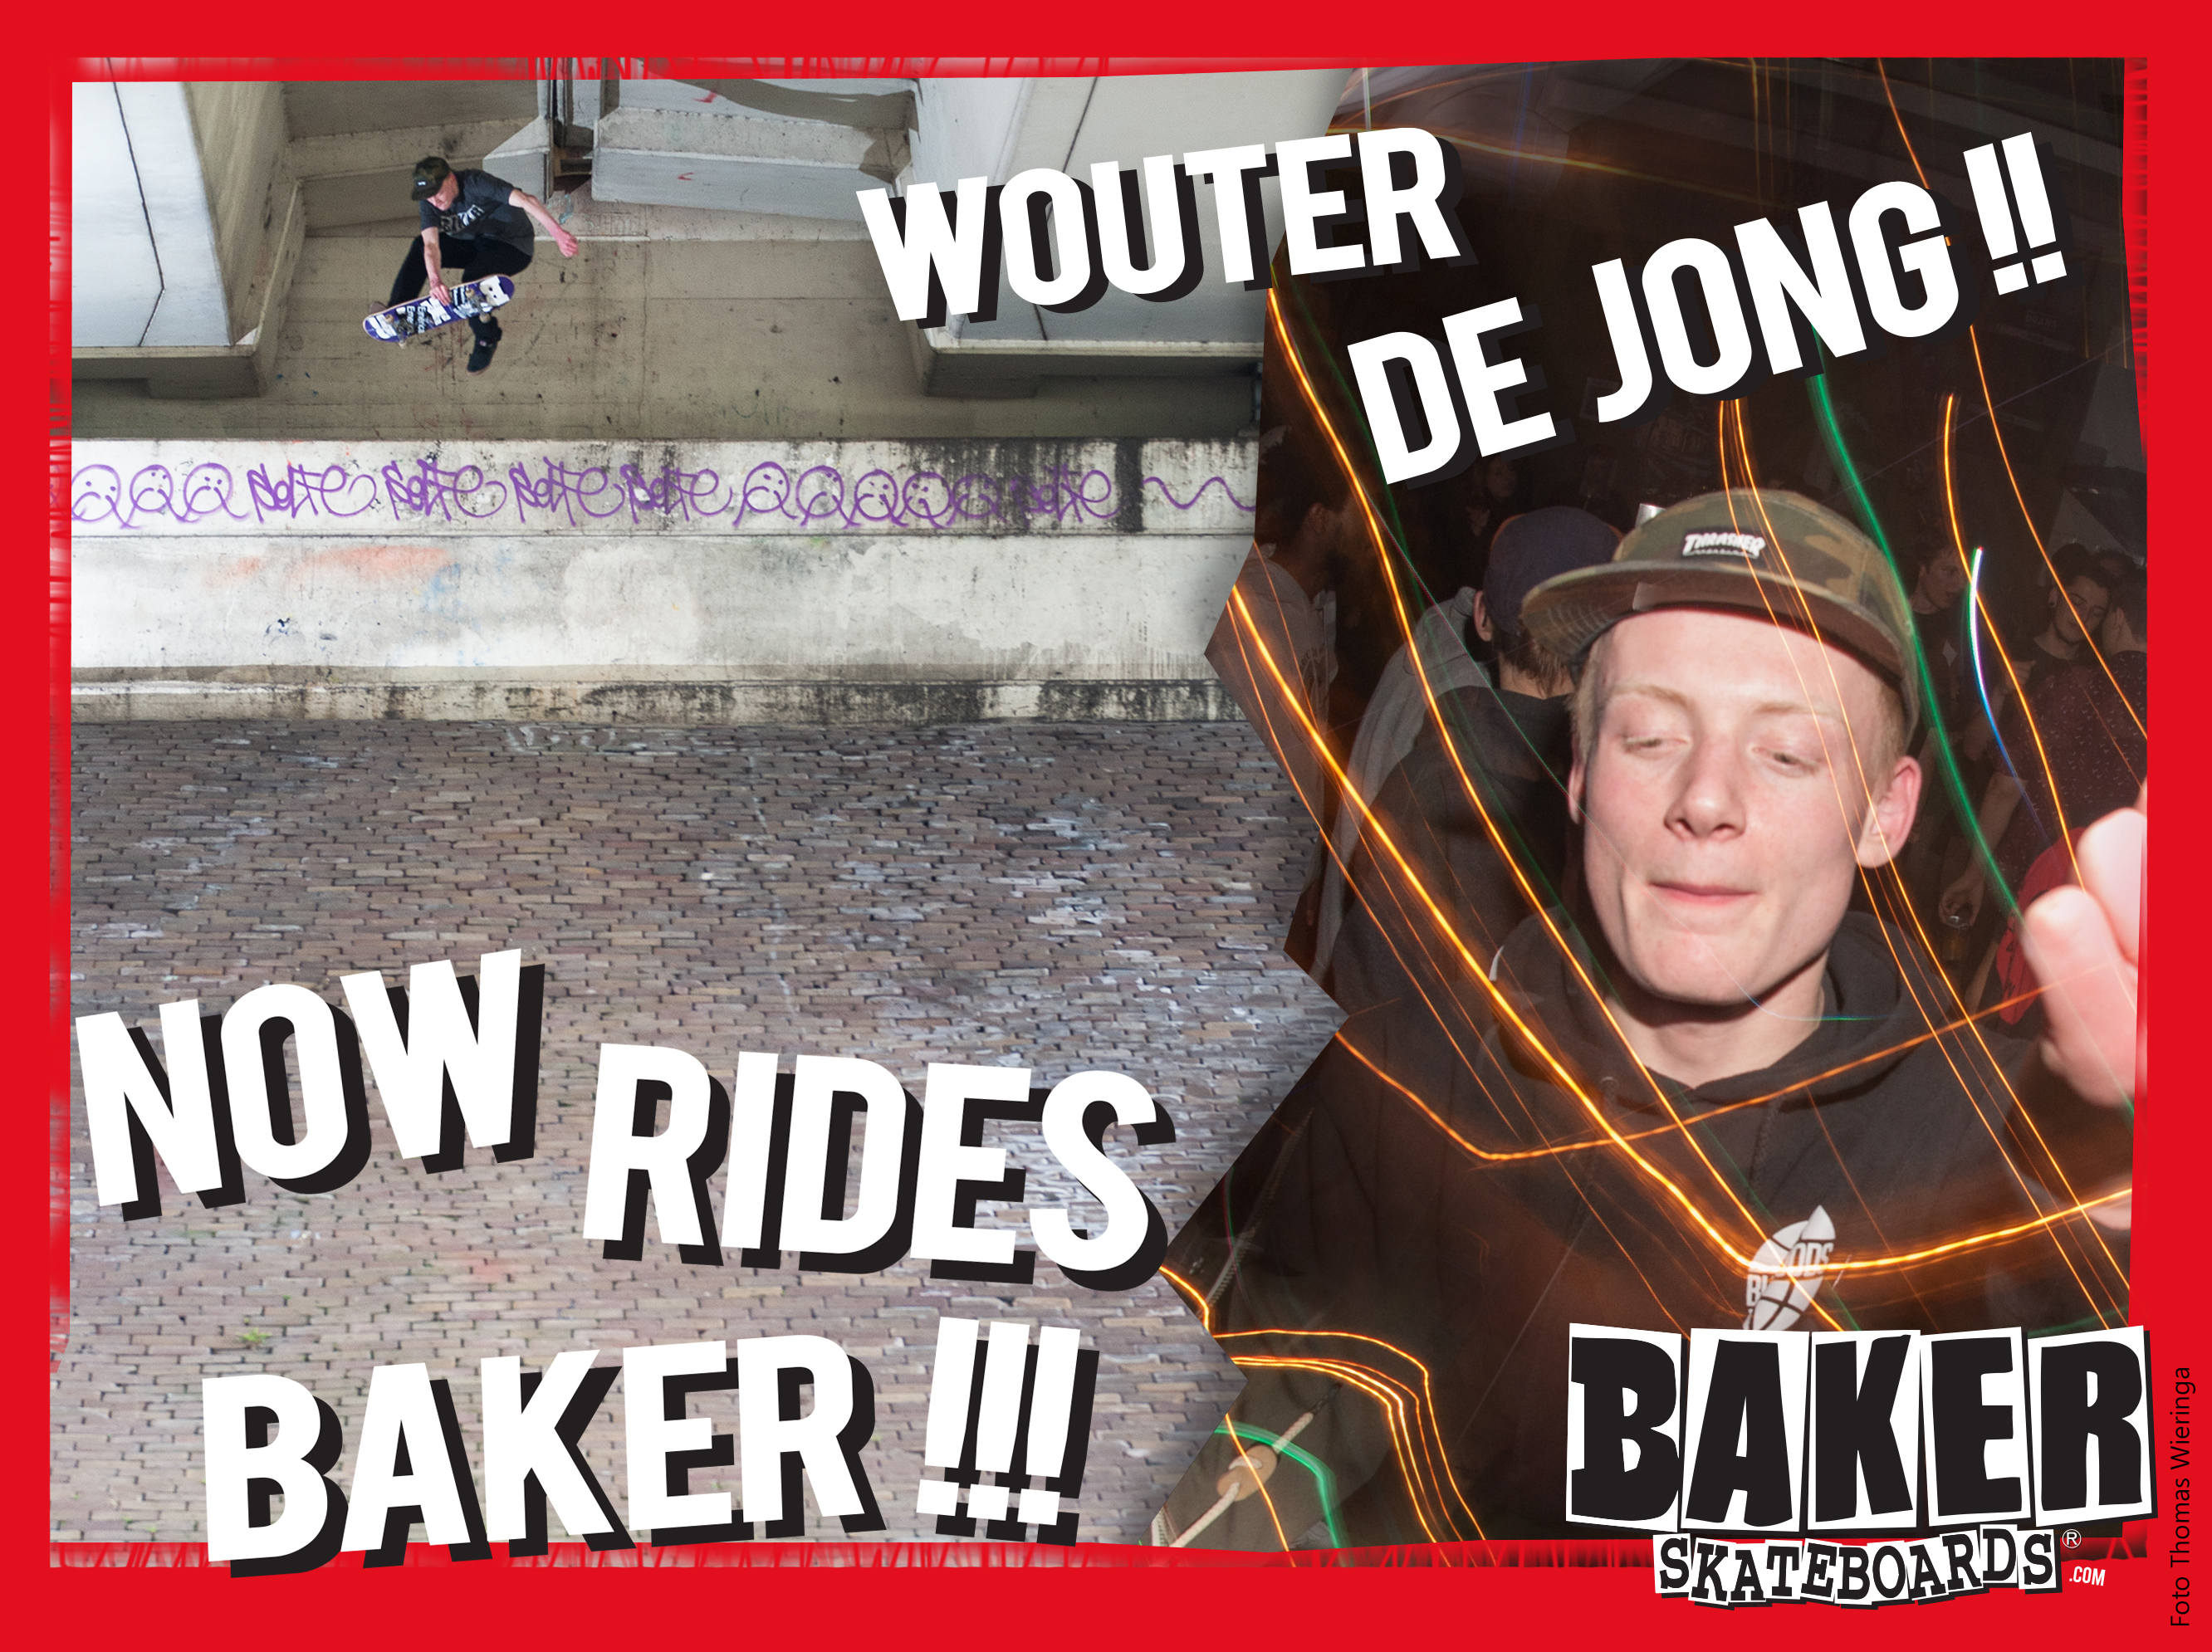 wouter de jong welcome to baker ad v2.0